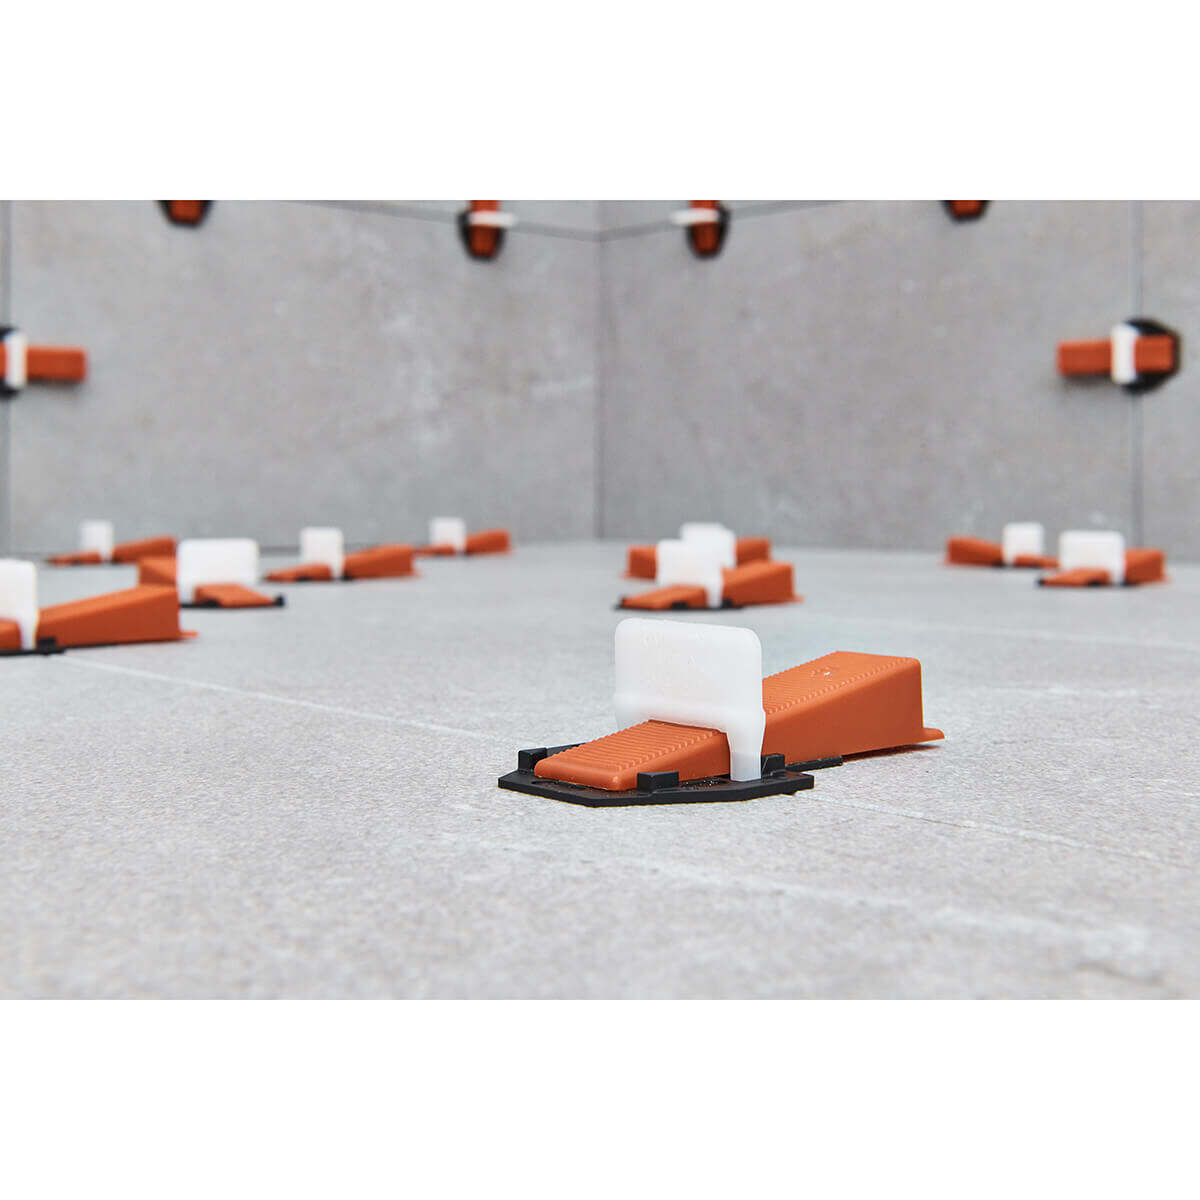 Leveling Floors and Walls with RLS and Protective Plastic Platform